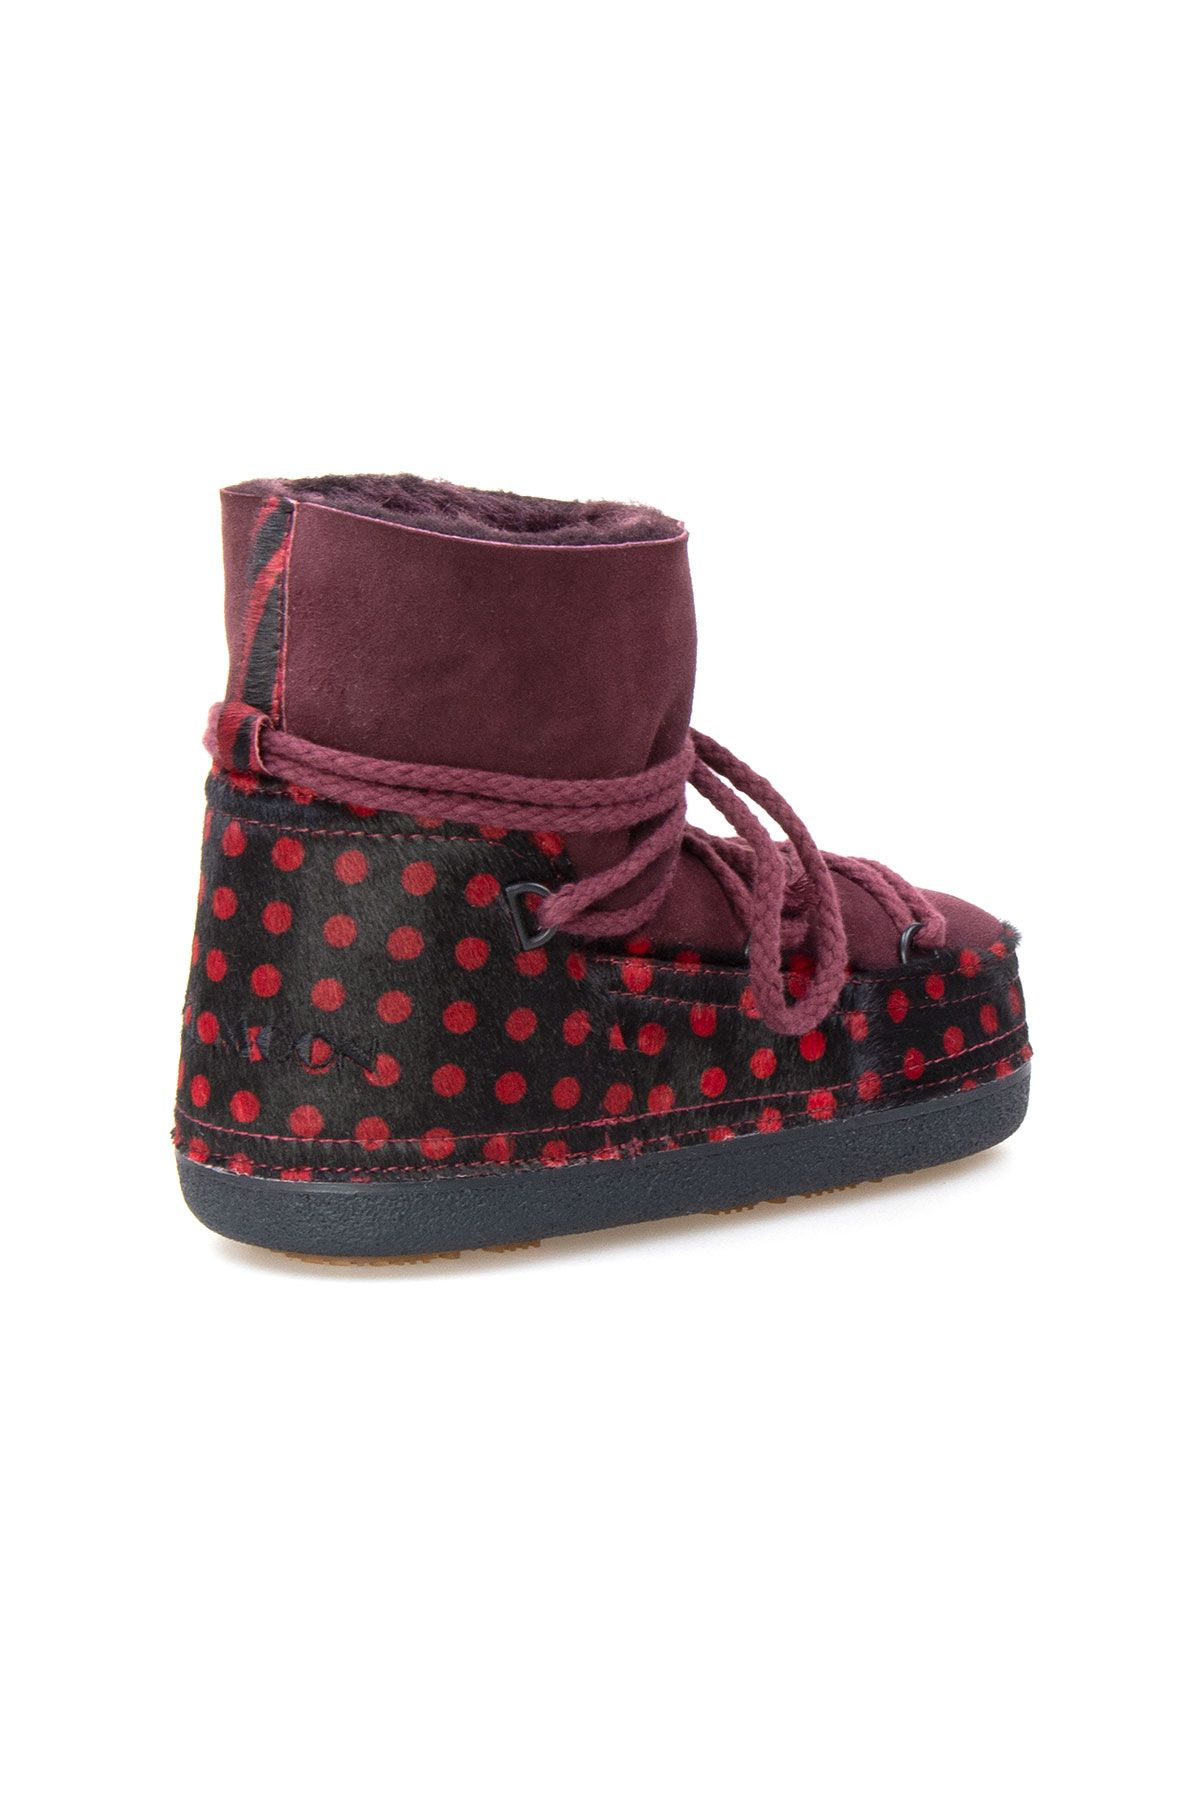 Cool Moon Genuine Leather Sheepskin Lined Women's Snow Boots  251103 Claret red